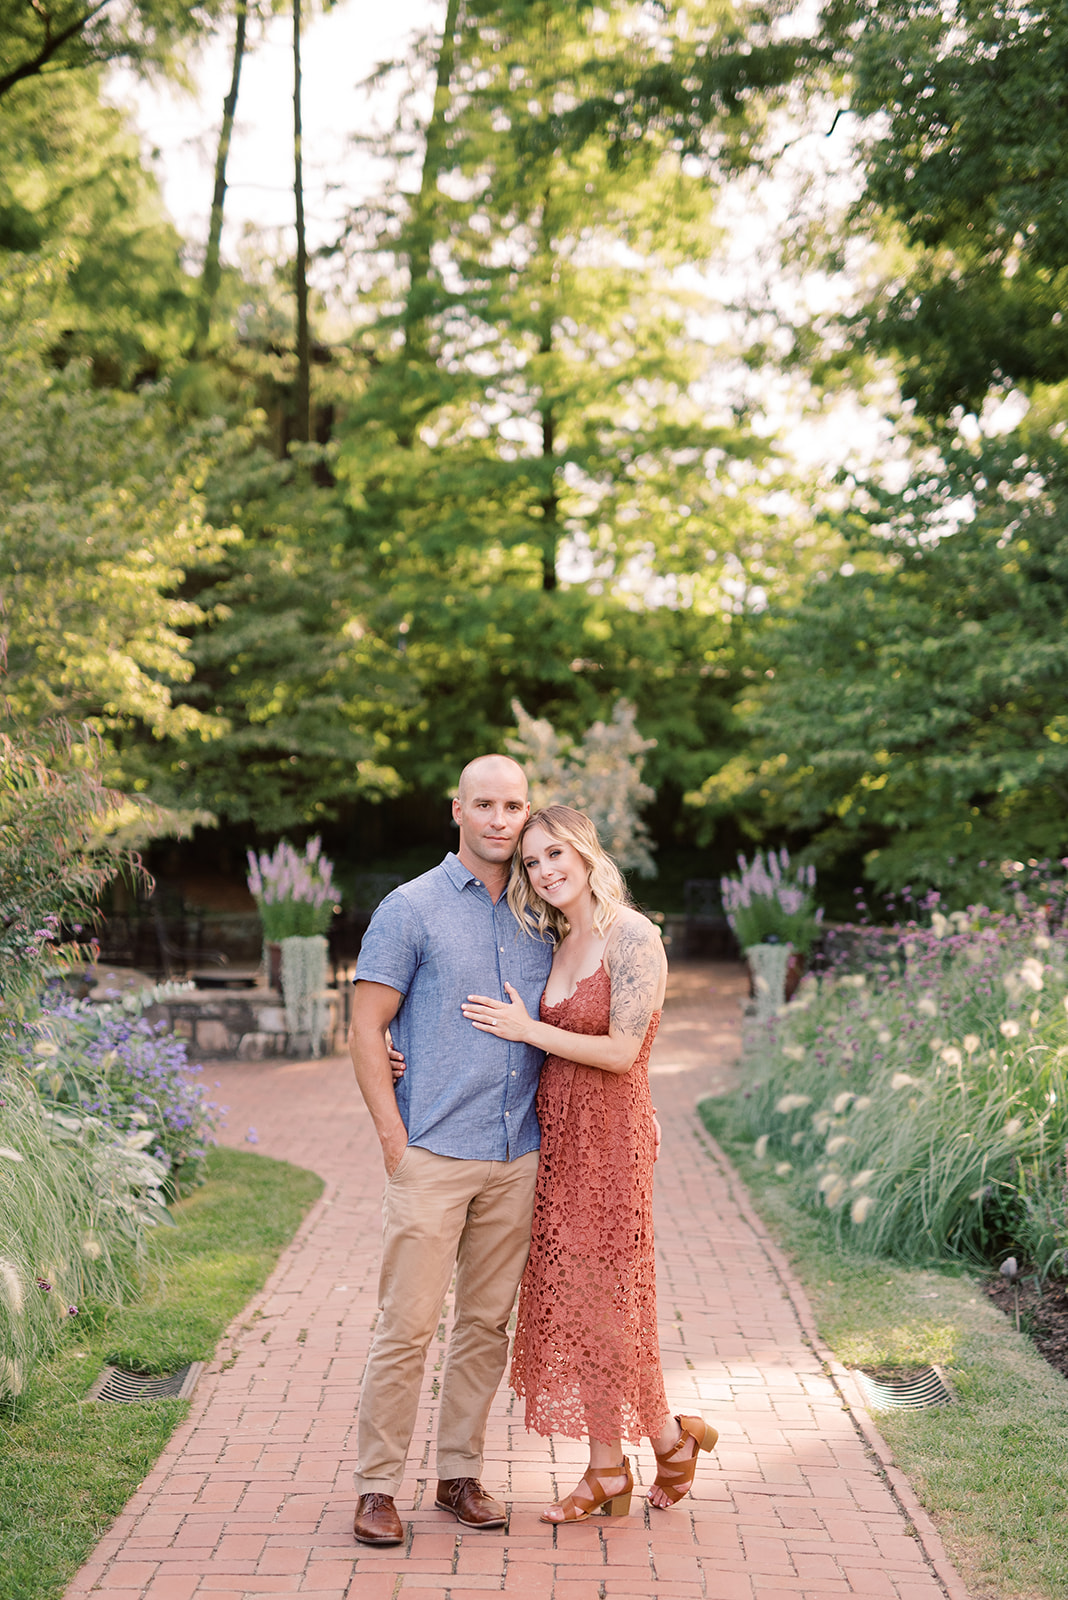 Garden party inspired engagement session at Longwood Gardens.